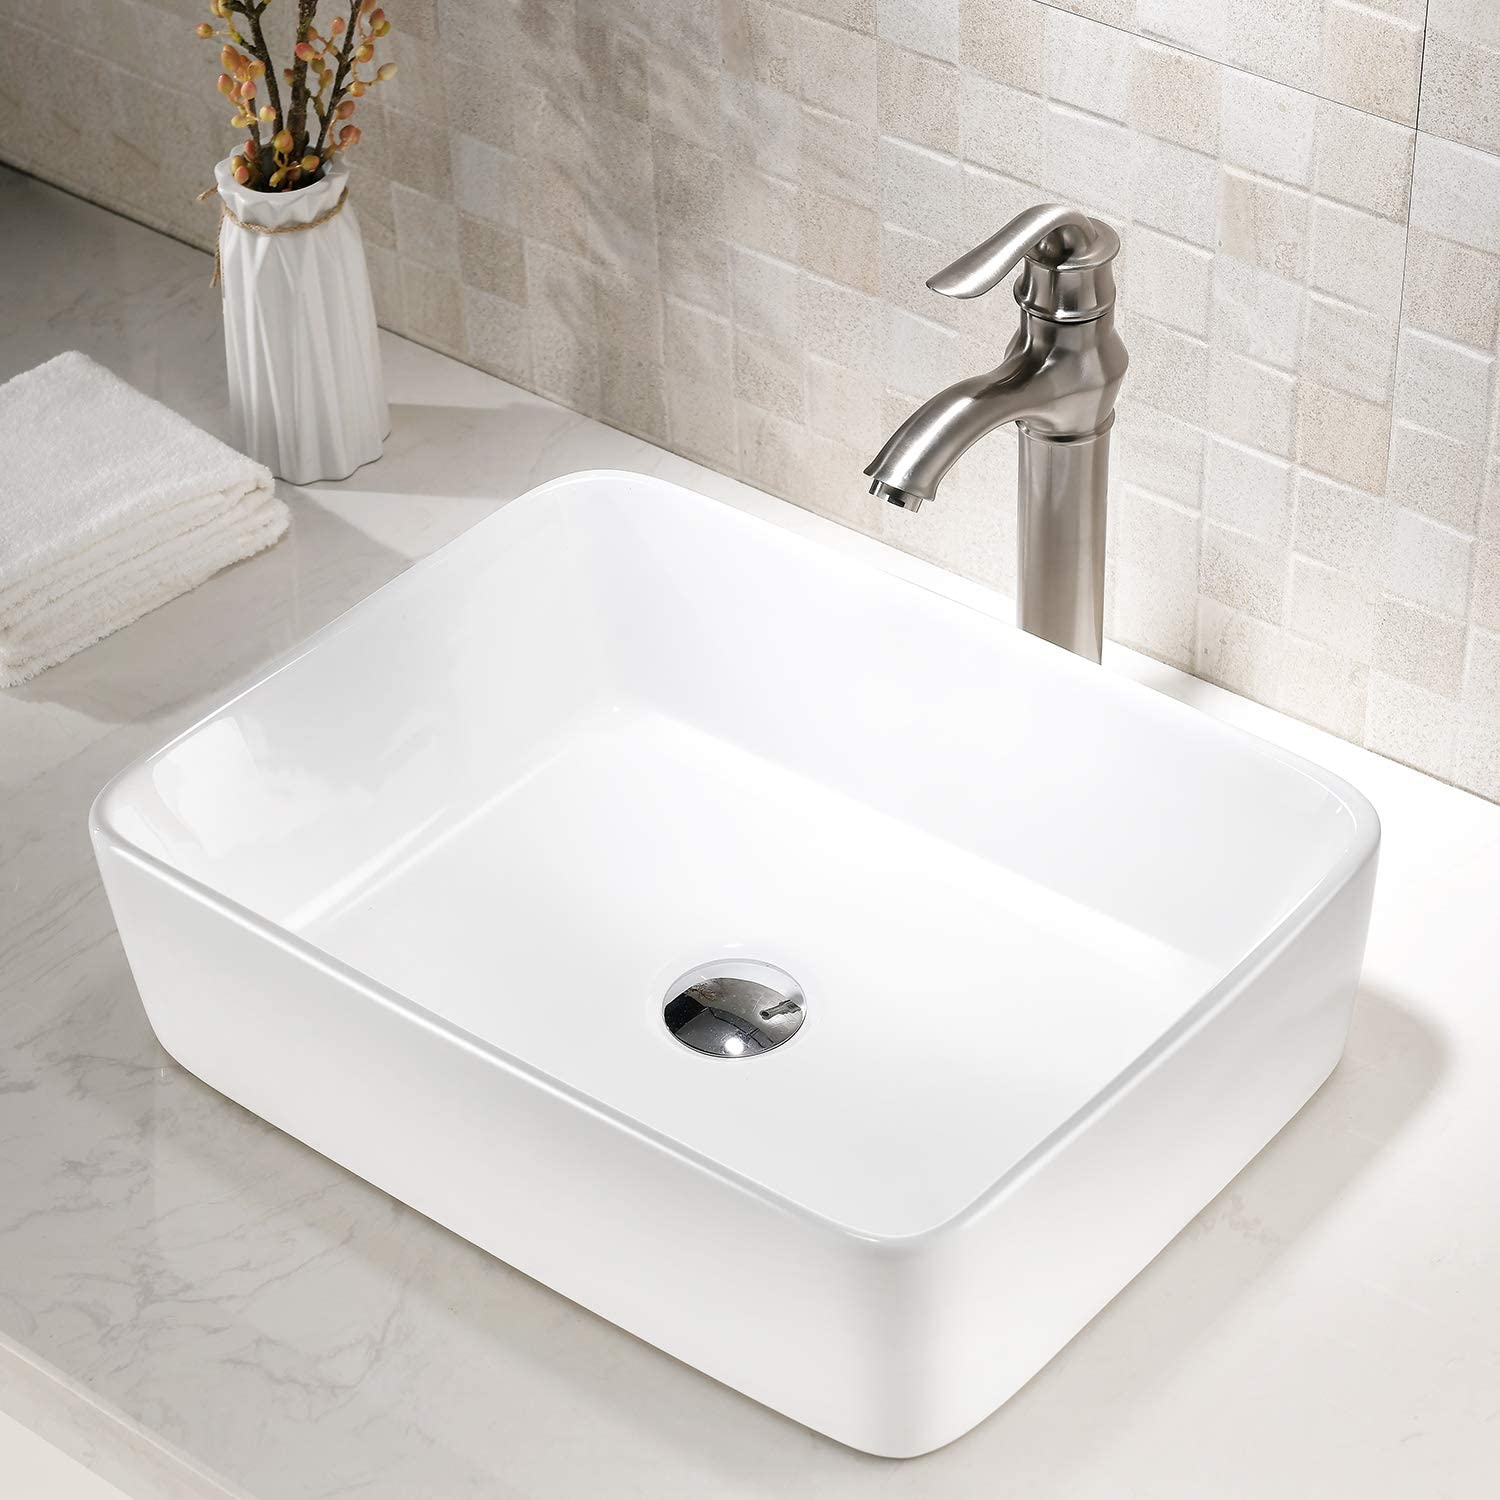 TRIUN 19 x15 Modern Porcelain Above Counter White Rectangle Square Ceramic Bathroom Vessel Sink